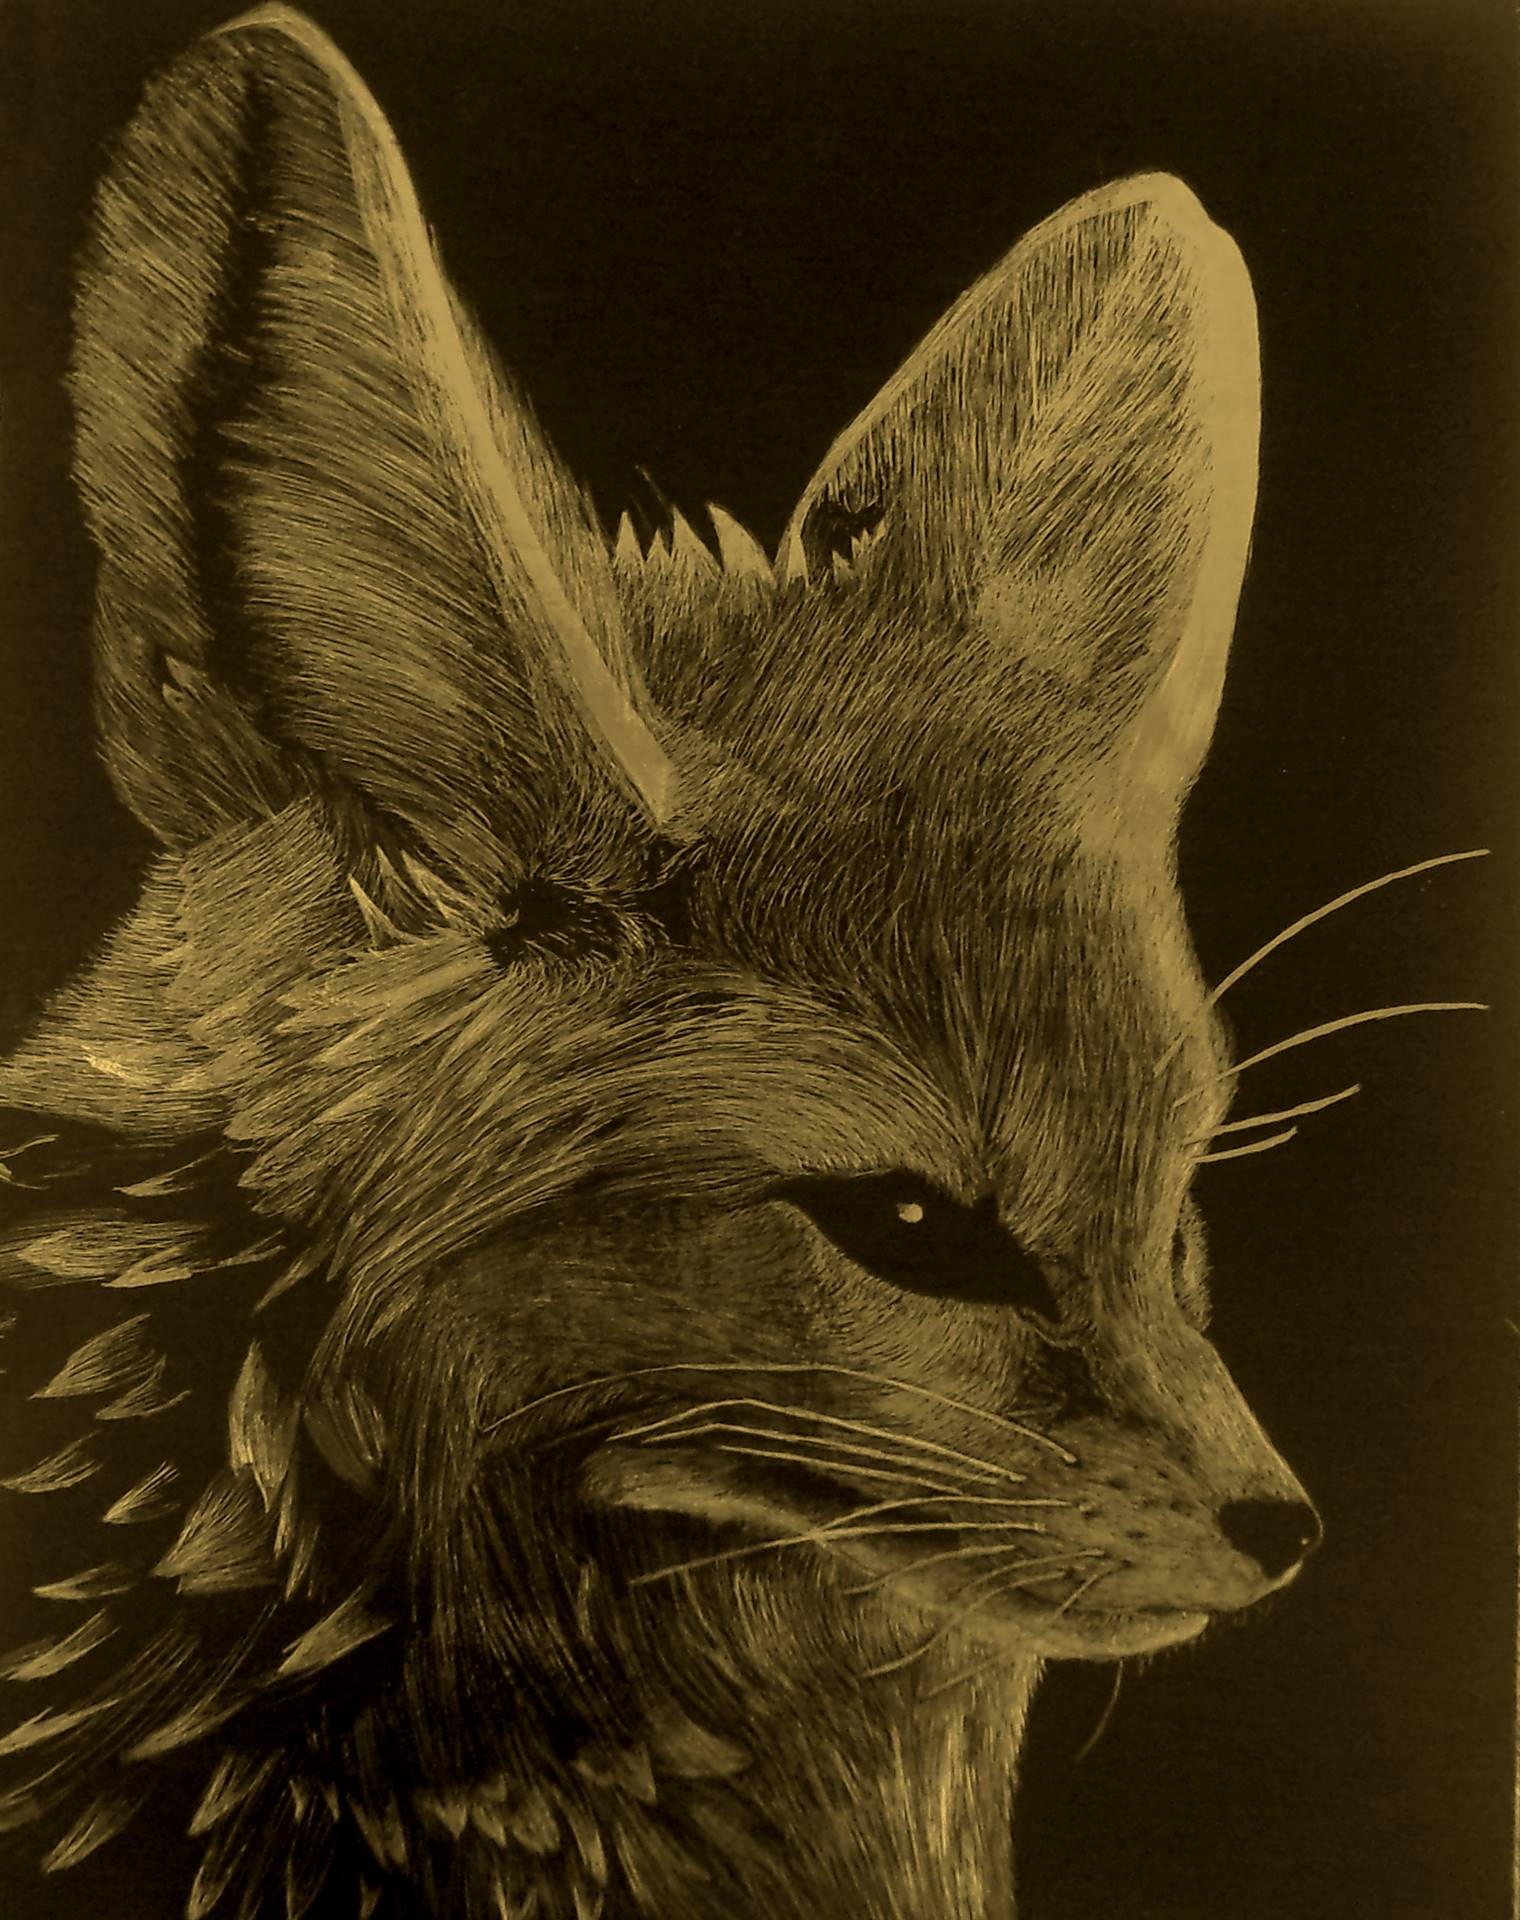 Scratchboard artwork of a fennec fox face